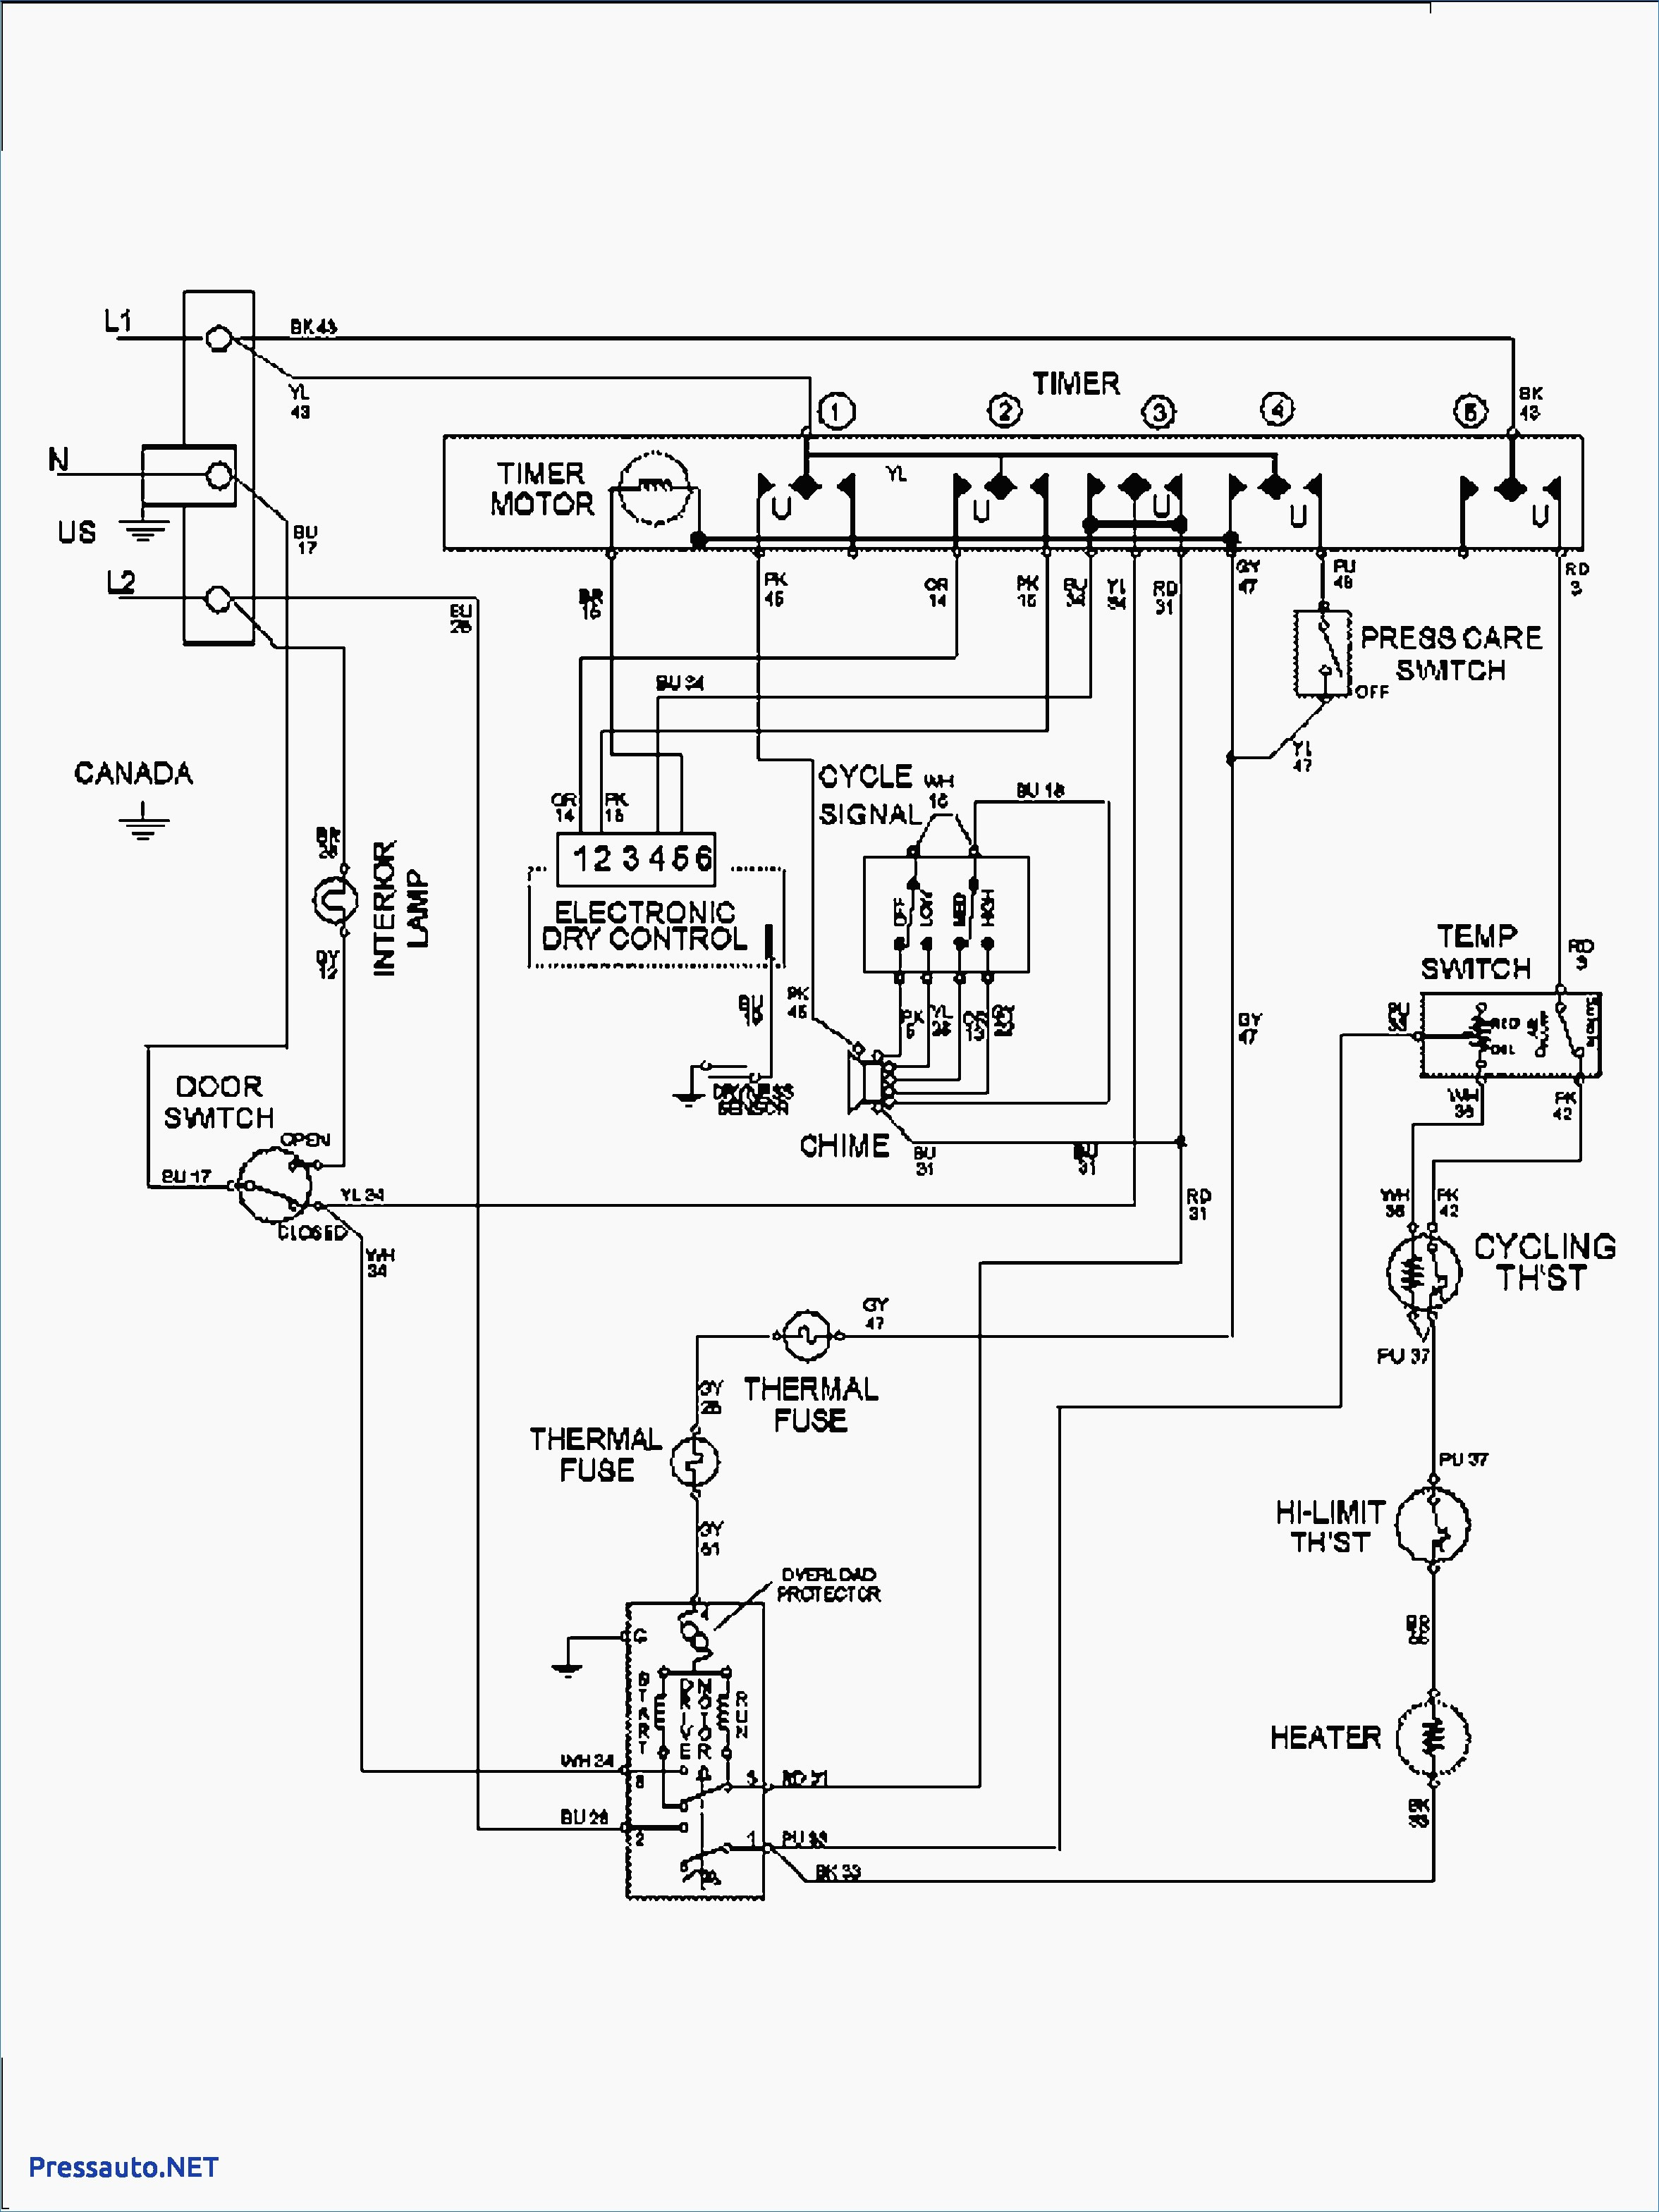 Whirlpool Dryer Plug Wiring Diagram | Releaseganji - Dryer Plug Wiring Diagram